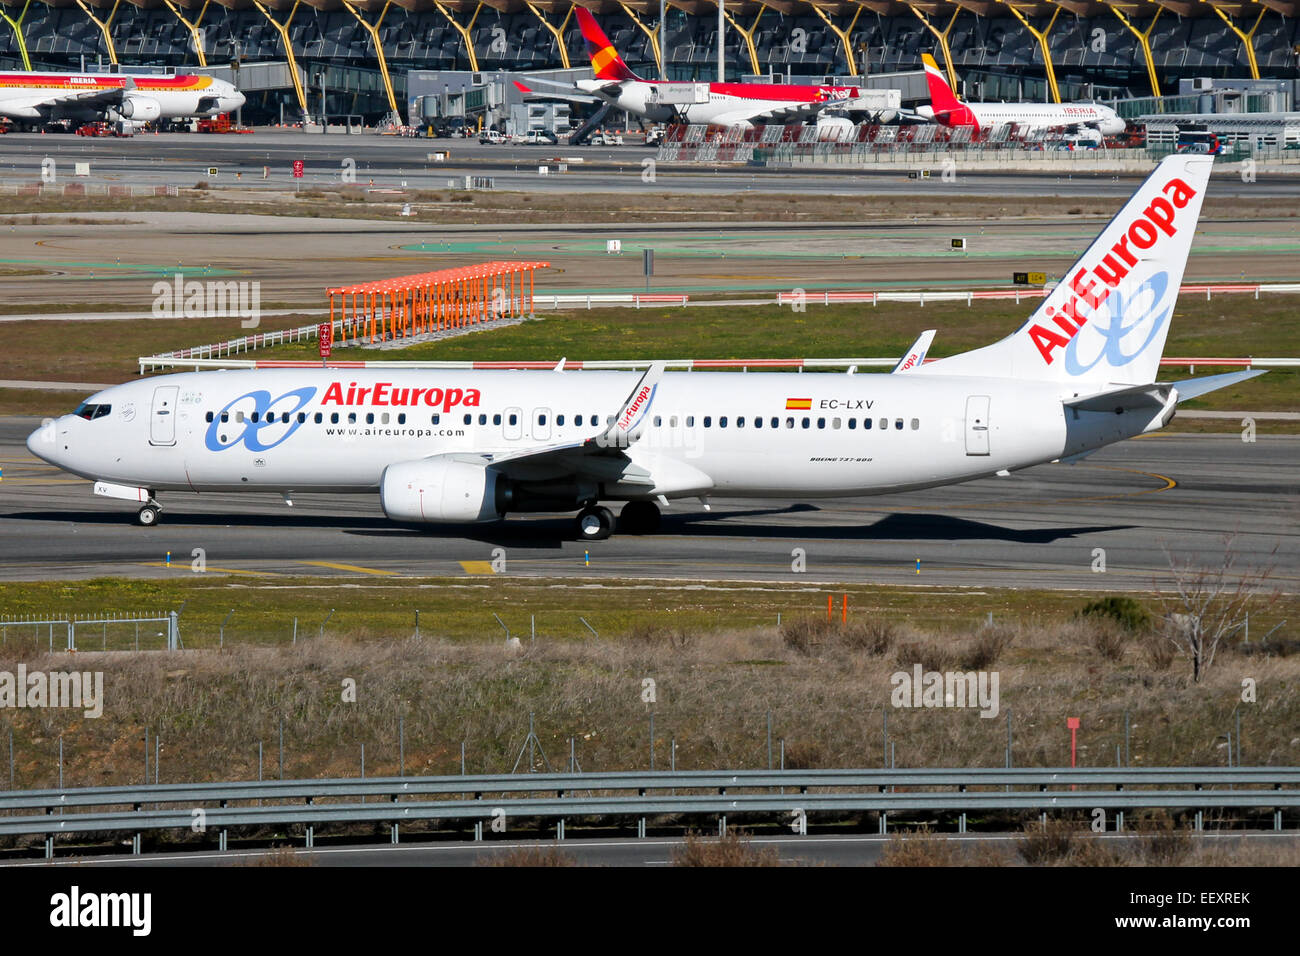 Air Europa Boeing 737-800 taxis to runway 33L at Madrid airport. - Stock Image